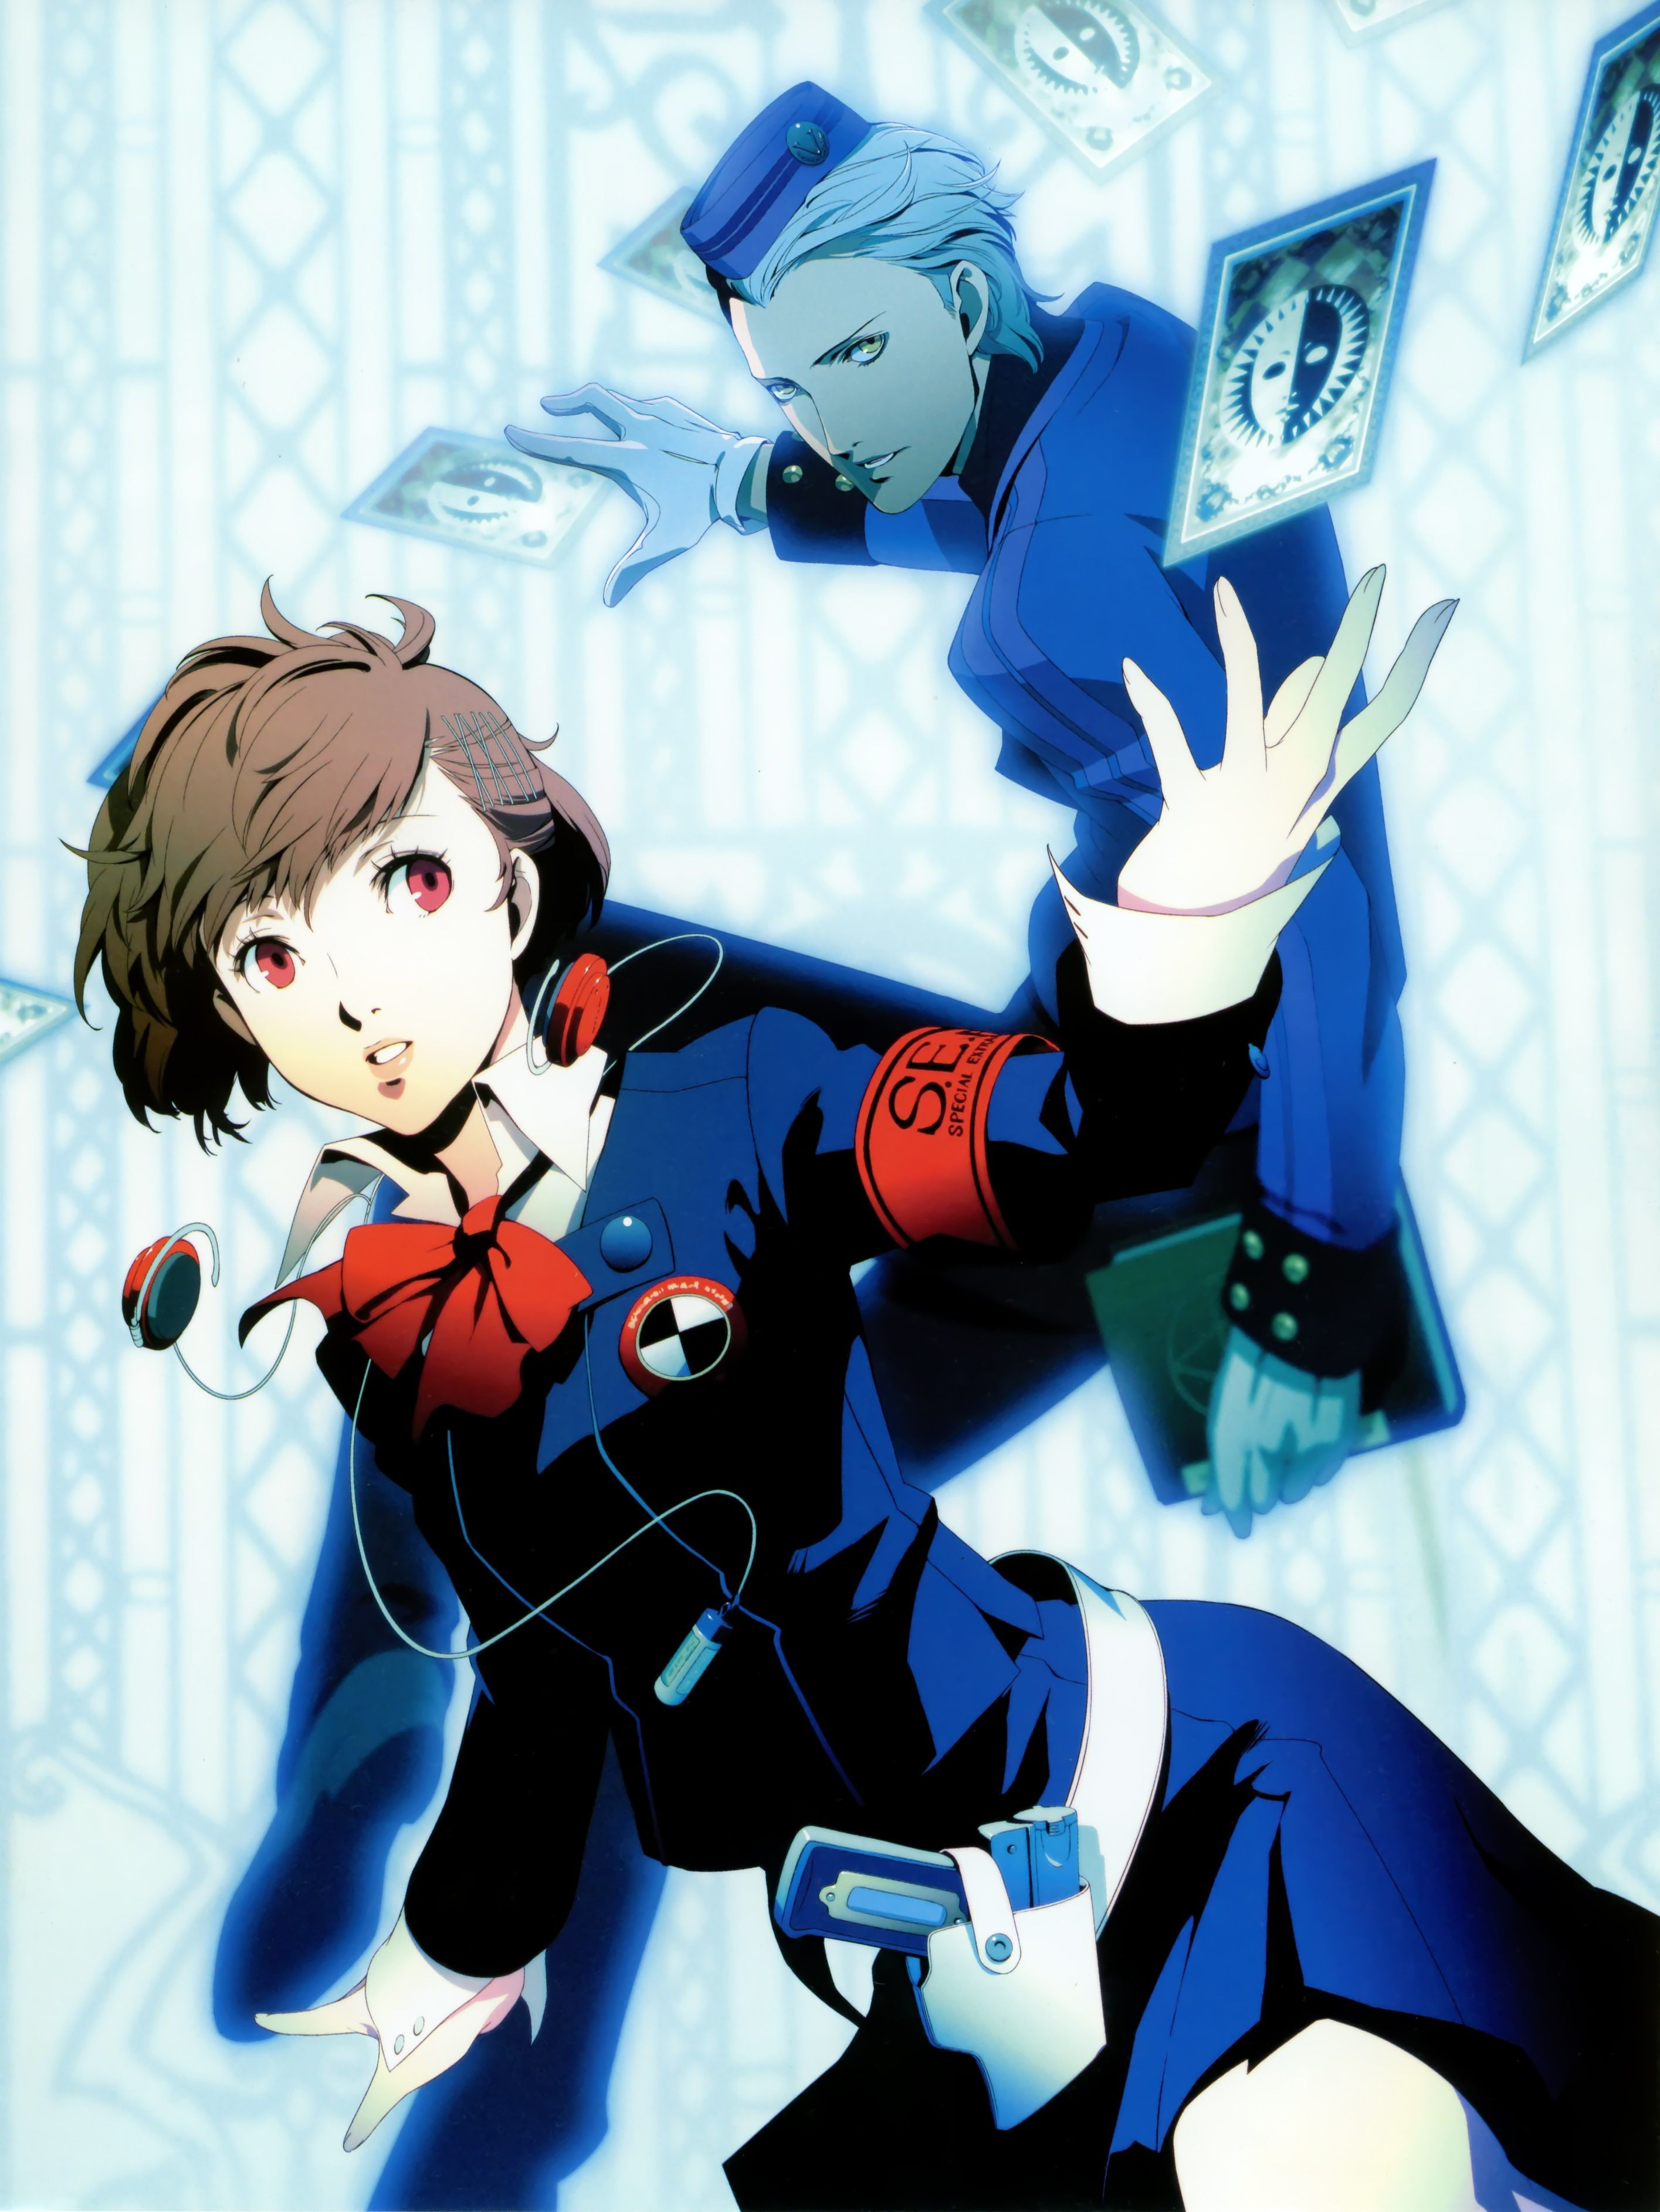 persona 3 dating gifts You've just started dating, so what kinds of gifts do you give a new boyfriend during the holidays.